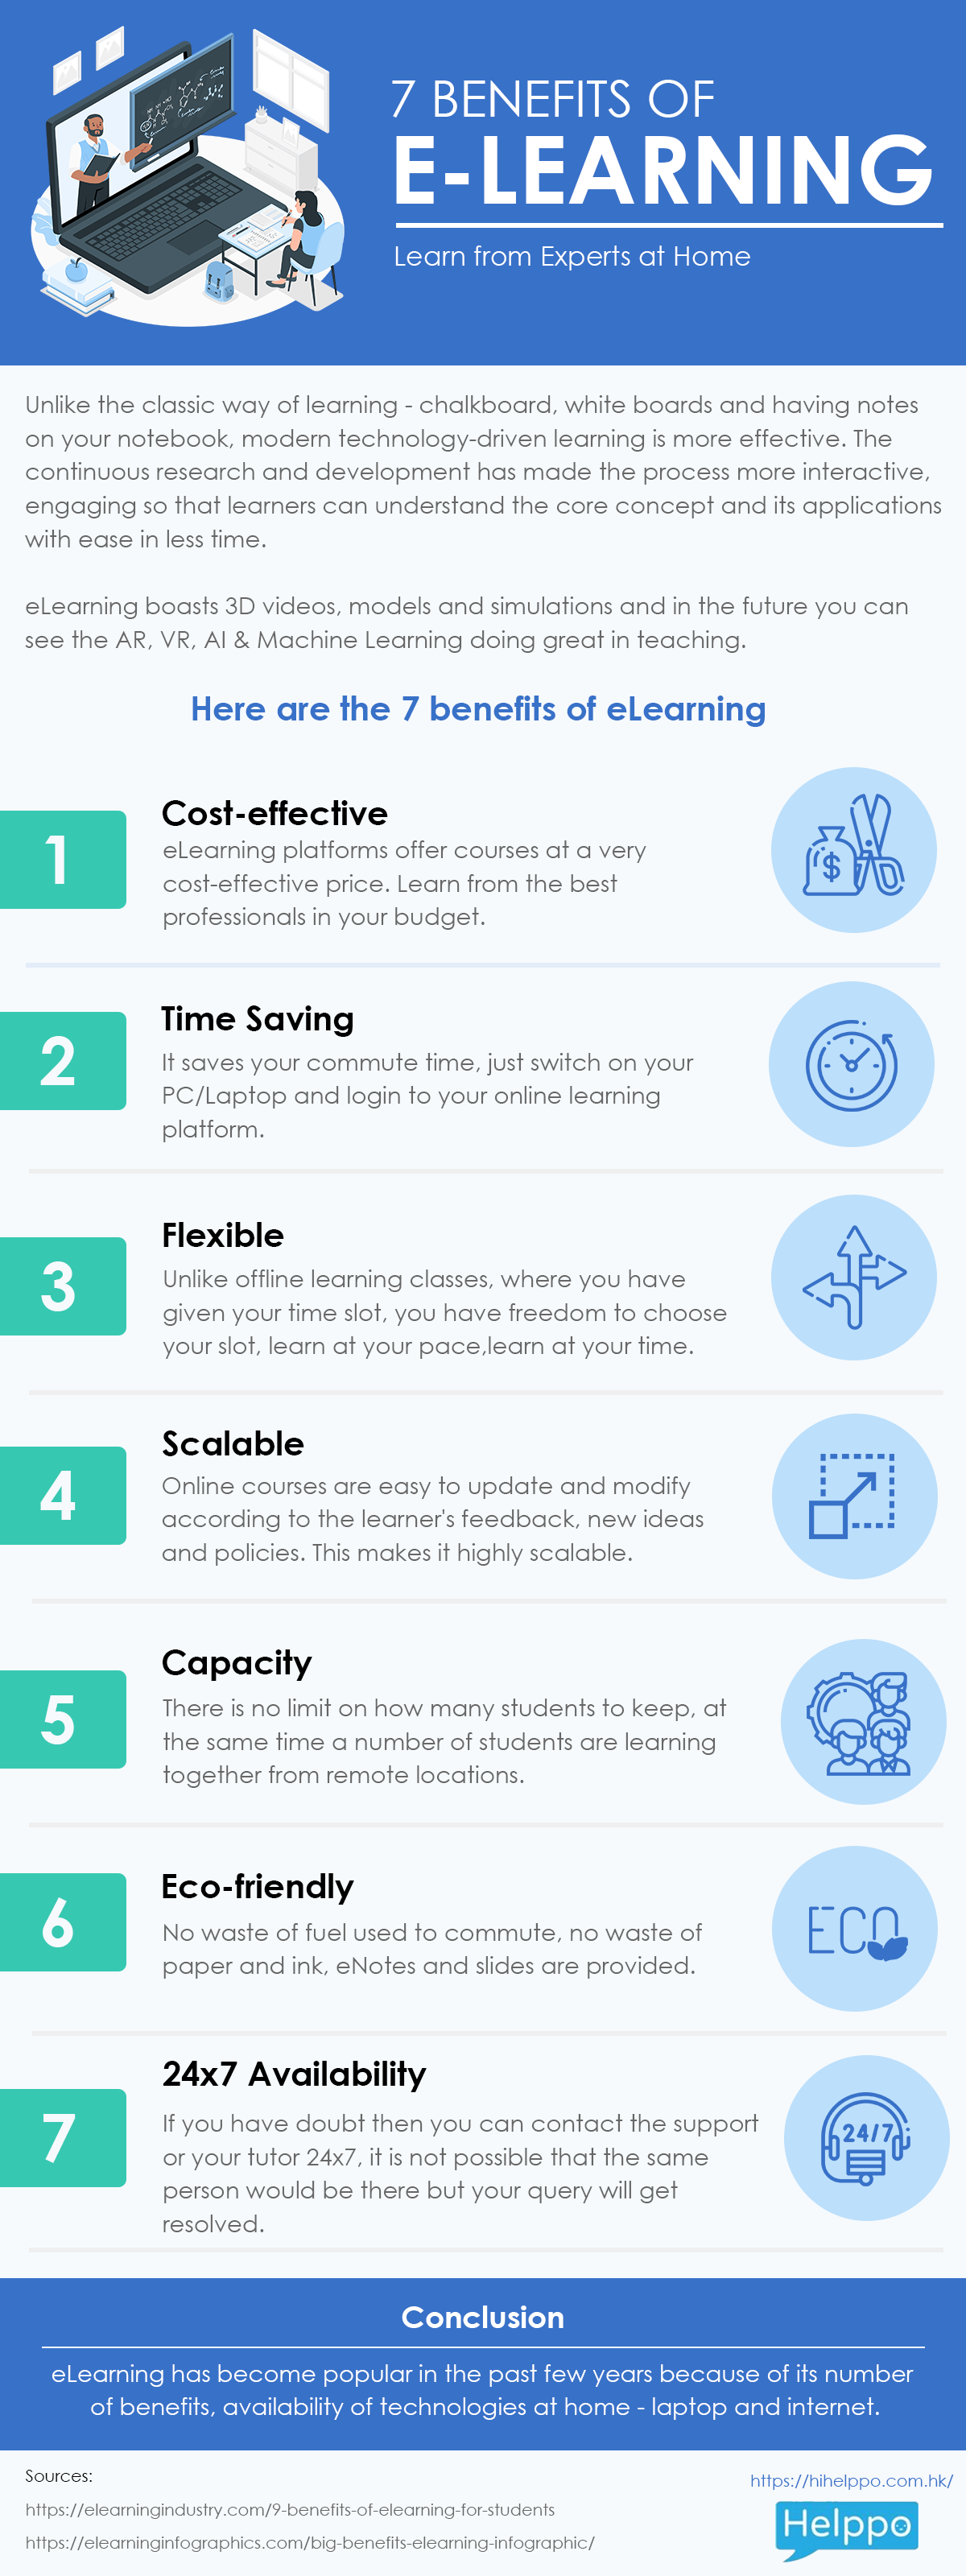 7 Benefits of eLearning